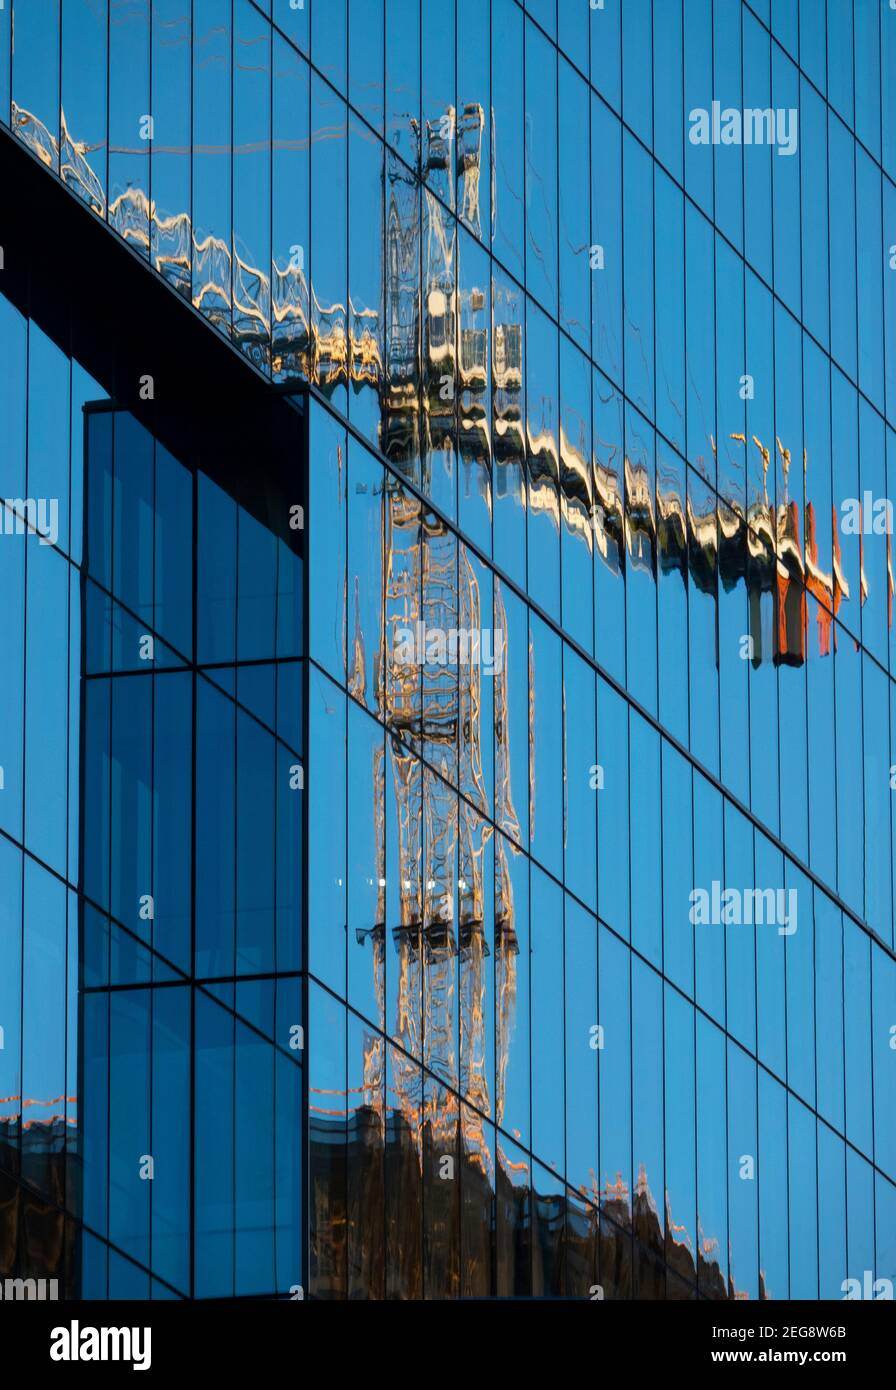 usa-maryland-md-bethesda-construction-crane-in-the-reflection-of-a-new-office-building-tower-2EG8W6B.jpg